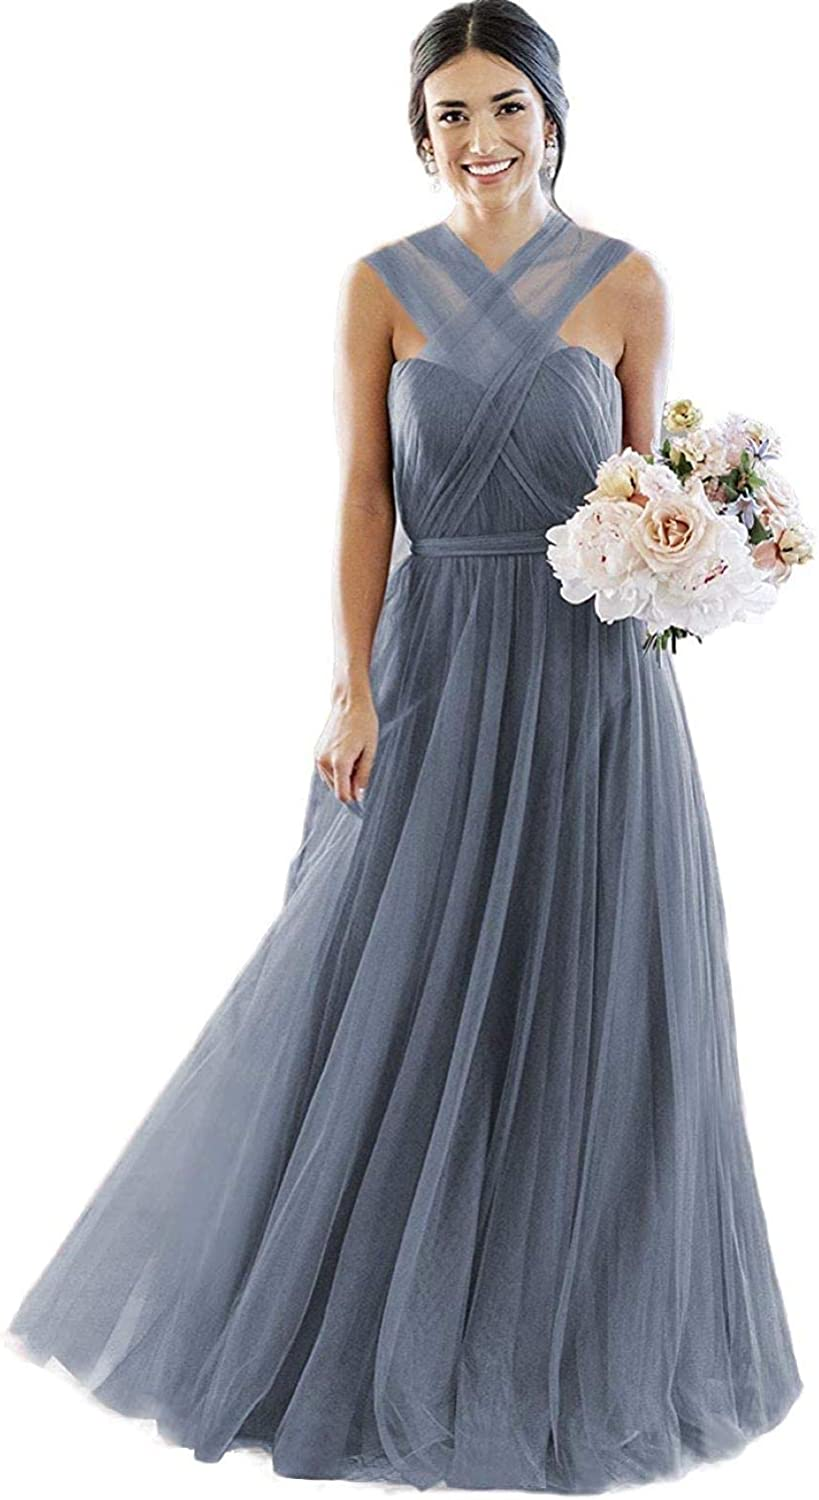 Women's Sweetheart Maxi Tulle Bridesmaid Dresses Long Tulle Straps Backless A-line Formal Wedding Party Dress